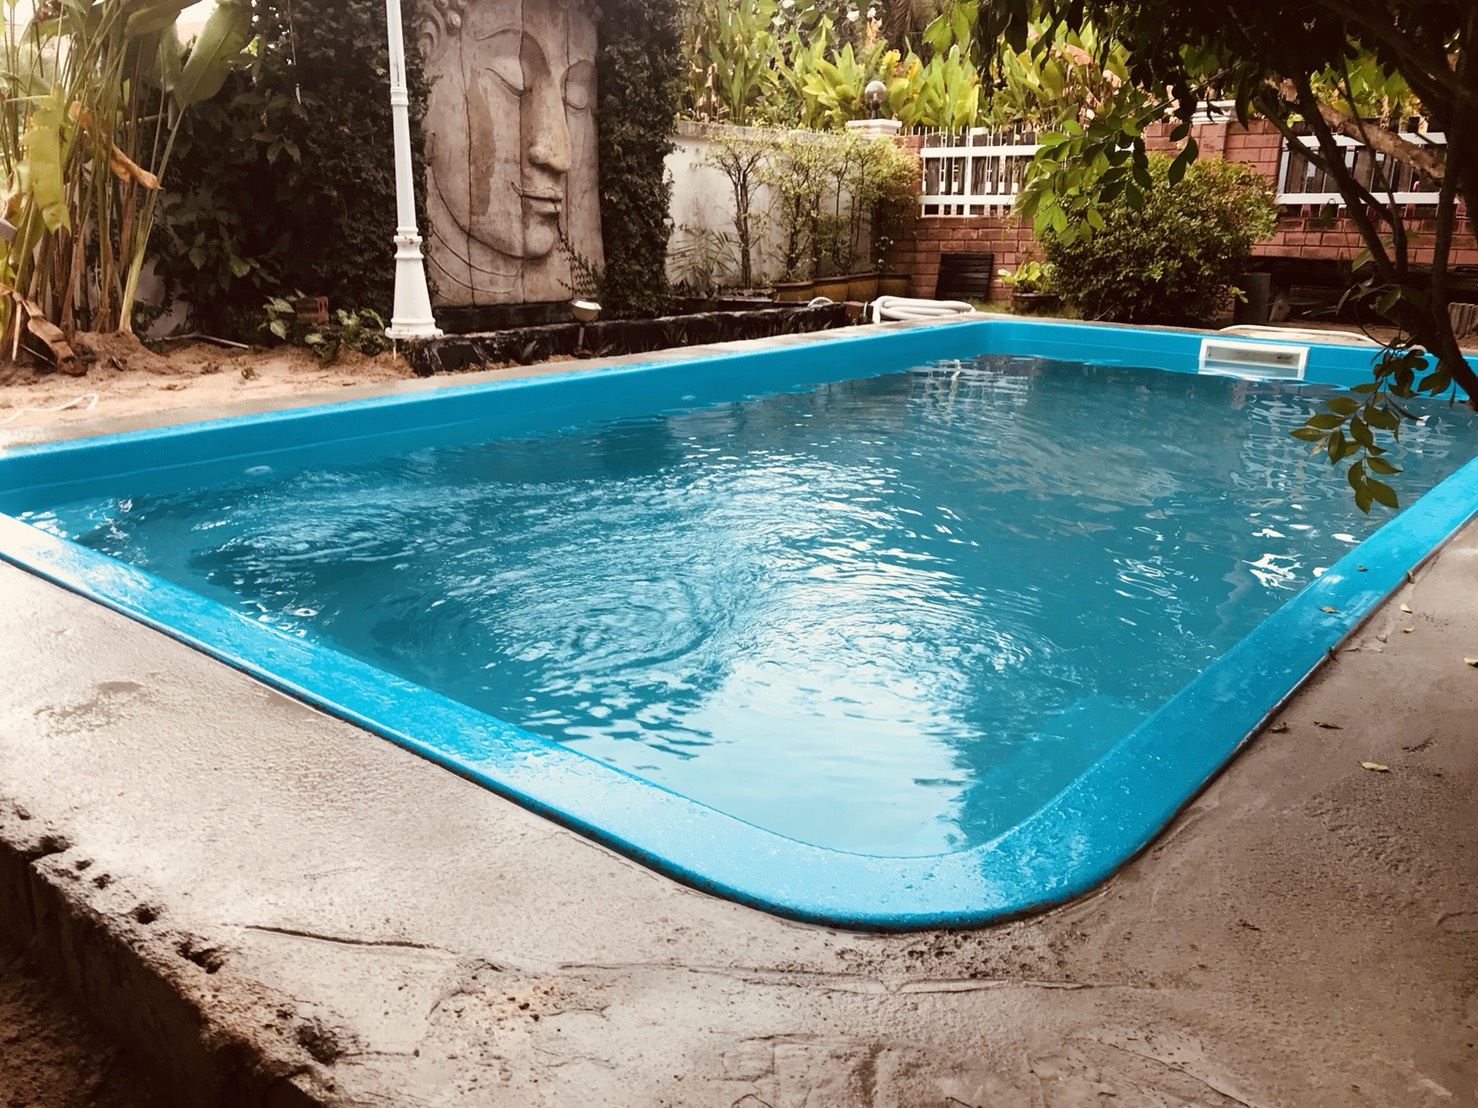 Pool world thailand issanswimming pool builders issan high quality pools in thailand - Swimming pool companies ...